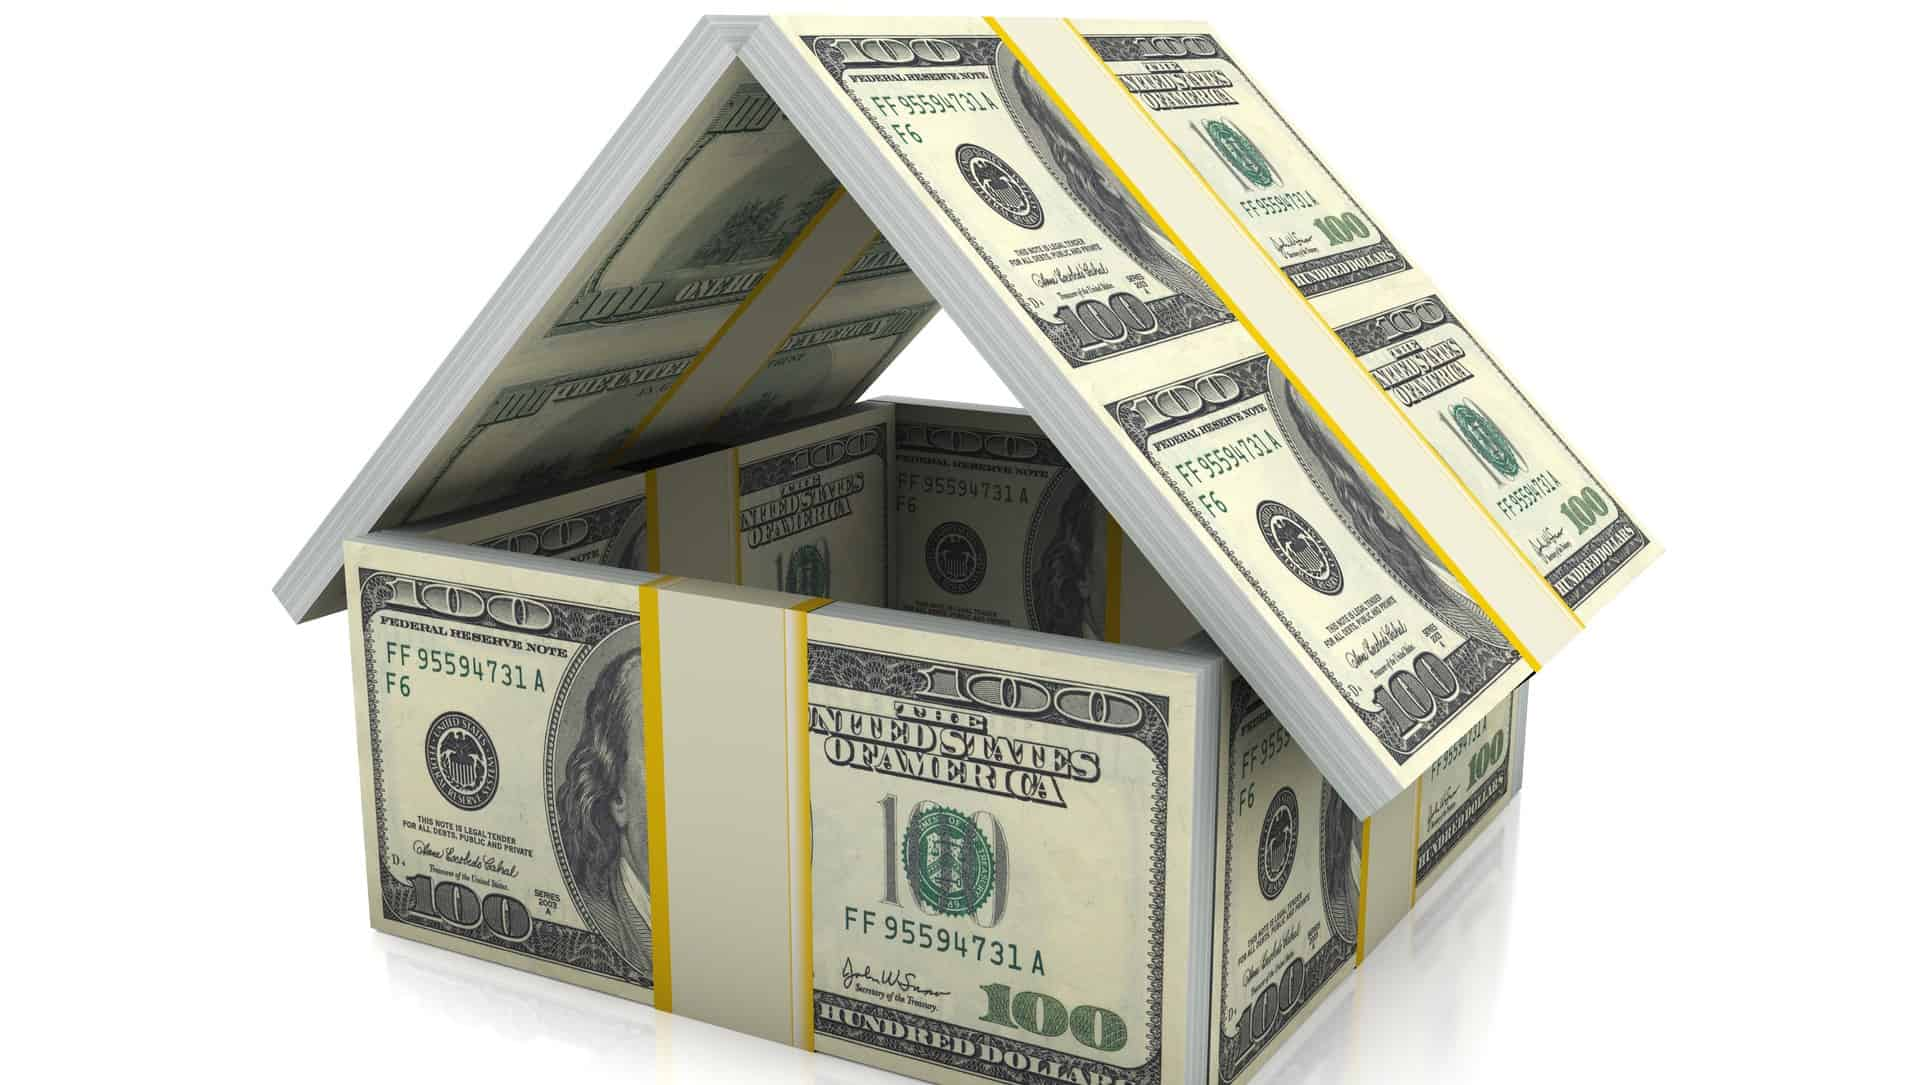 housing asx share price represented by miniature house made from US $100 notes